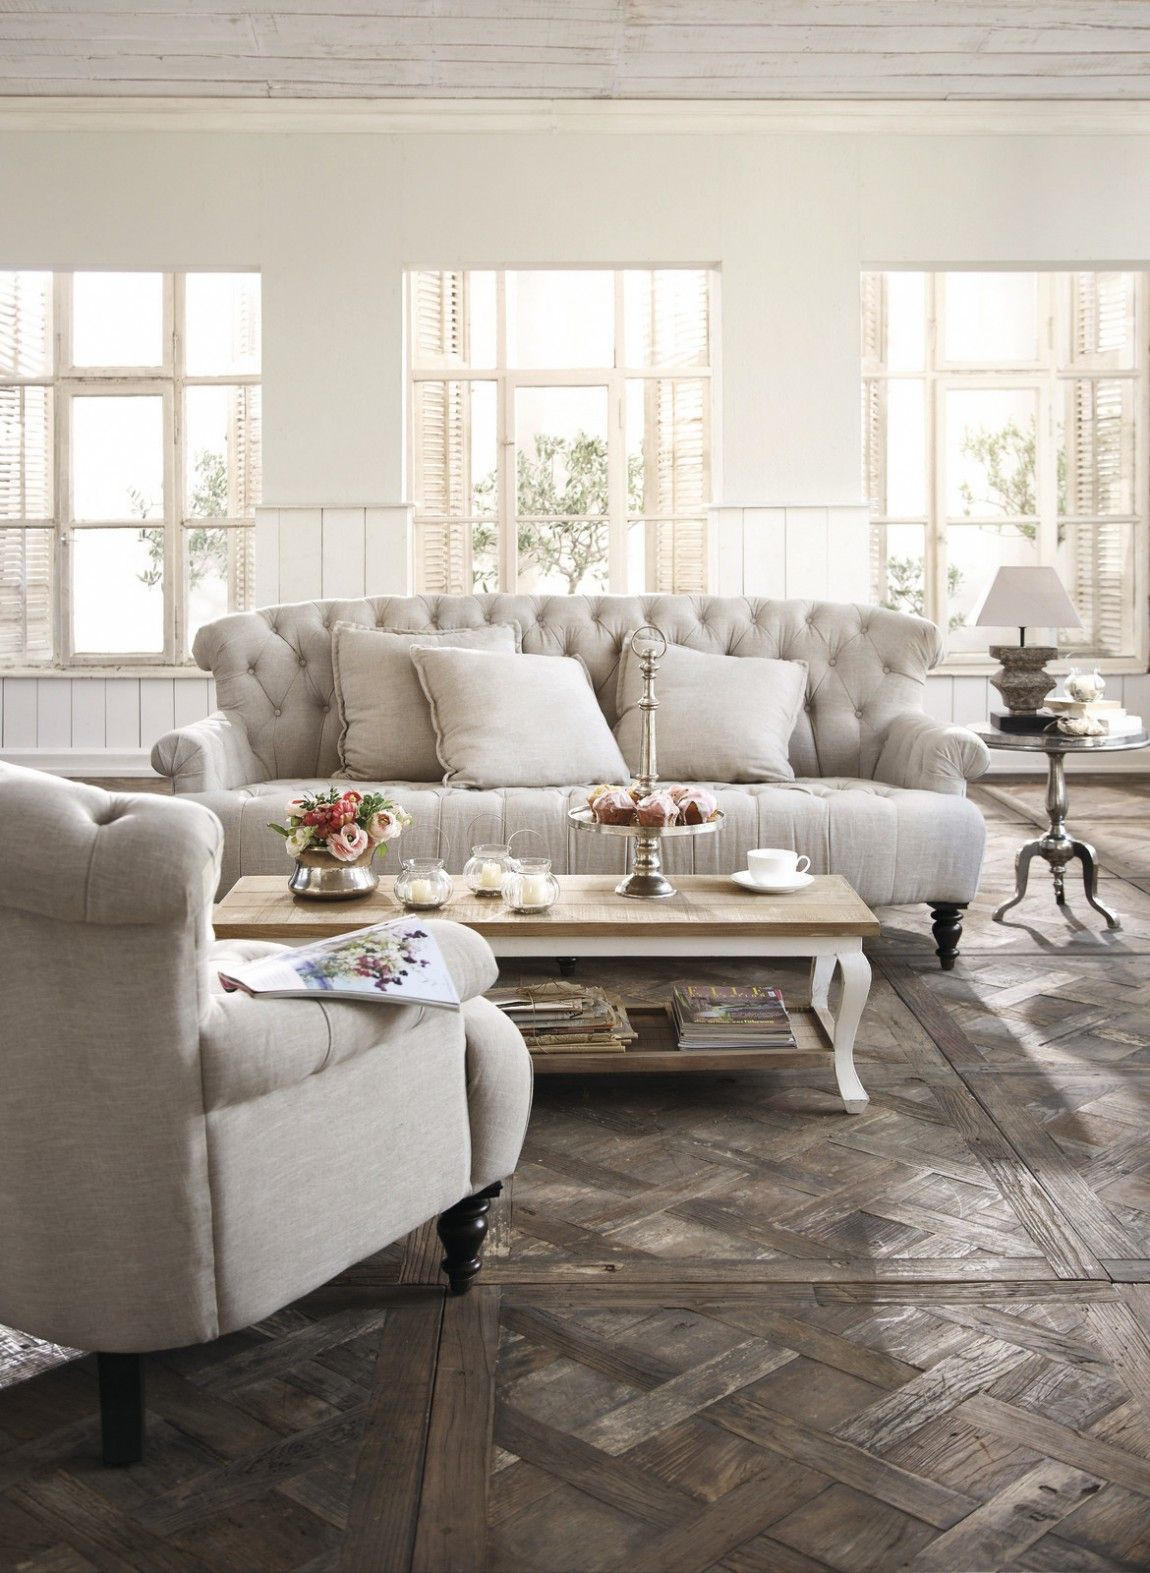 Romantisches Sofa Im Vintage Style, Landhausstil